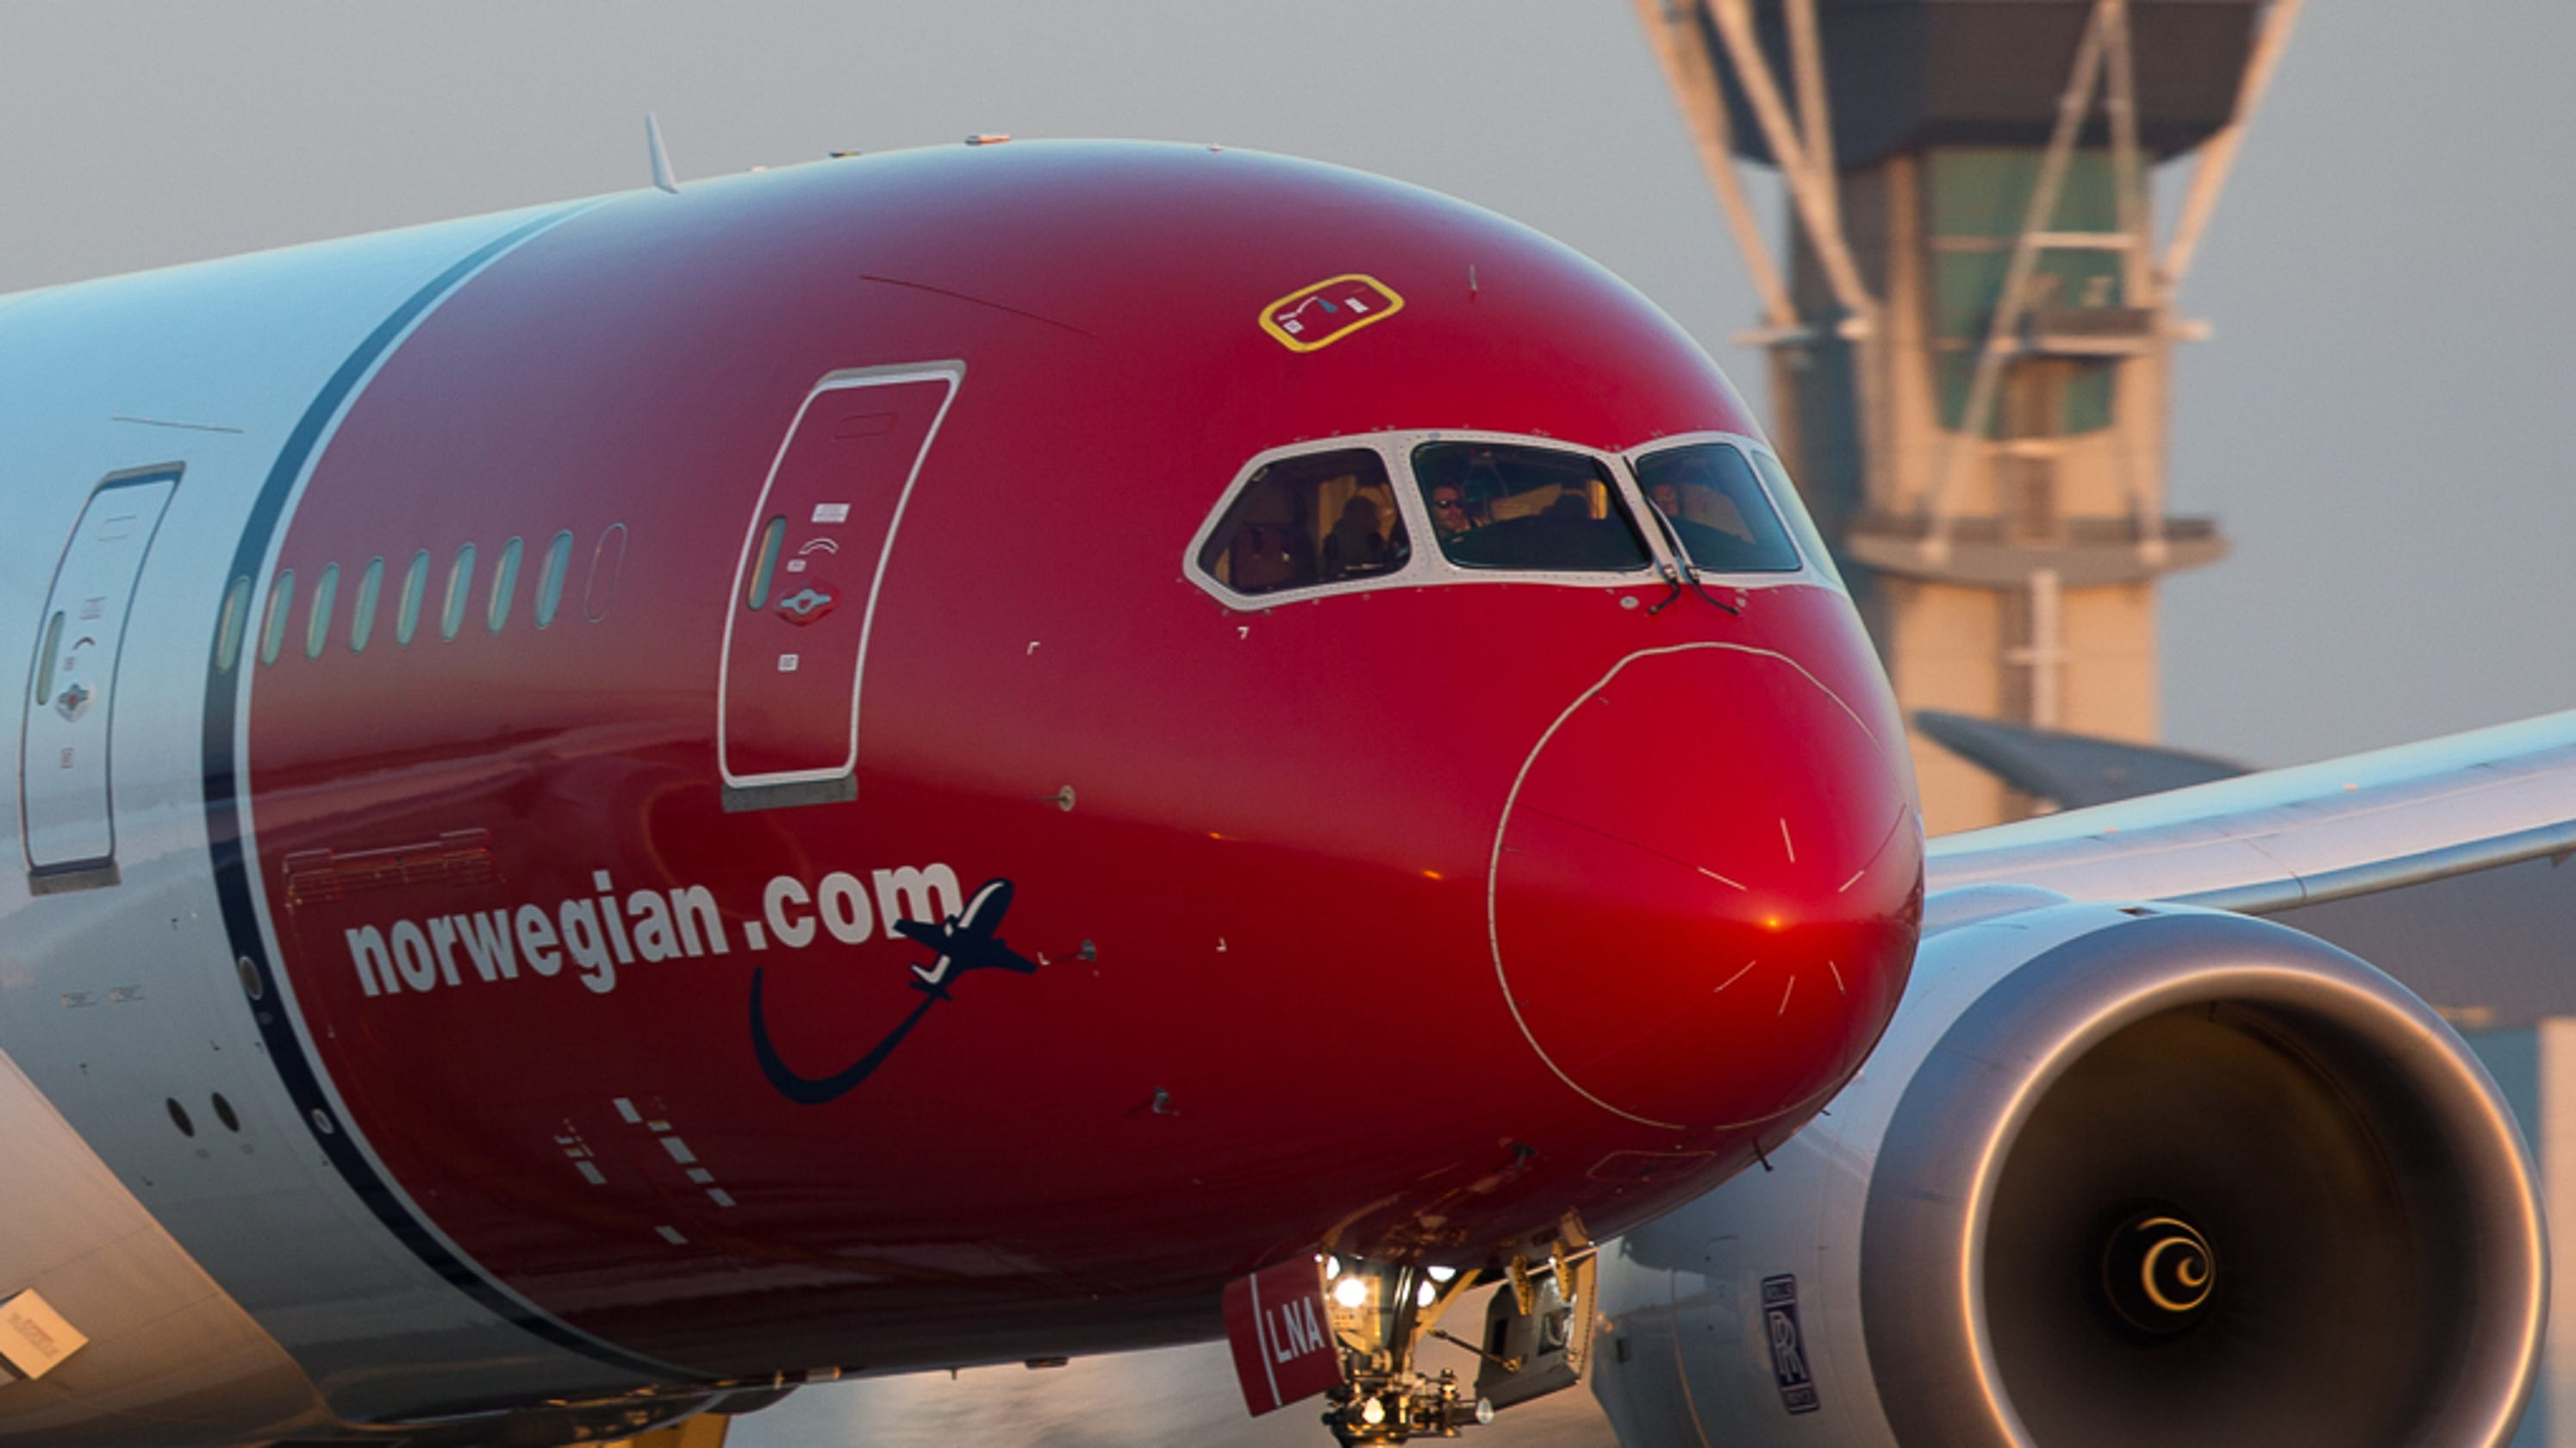 Norwegian Air\'s route map expands to Brazil with Rio de Janeiro flights